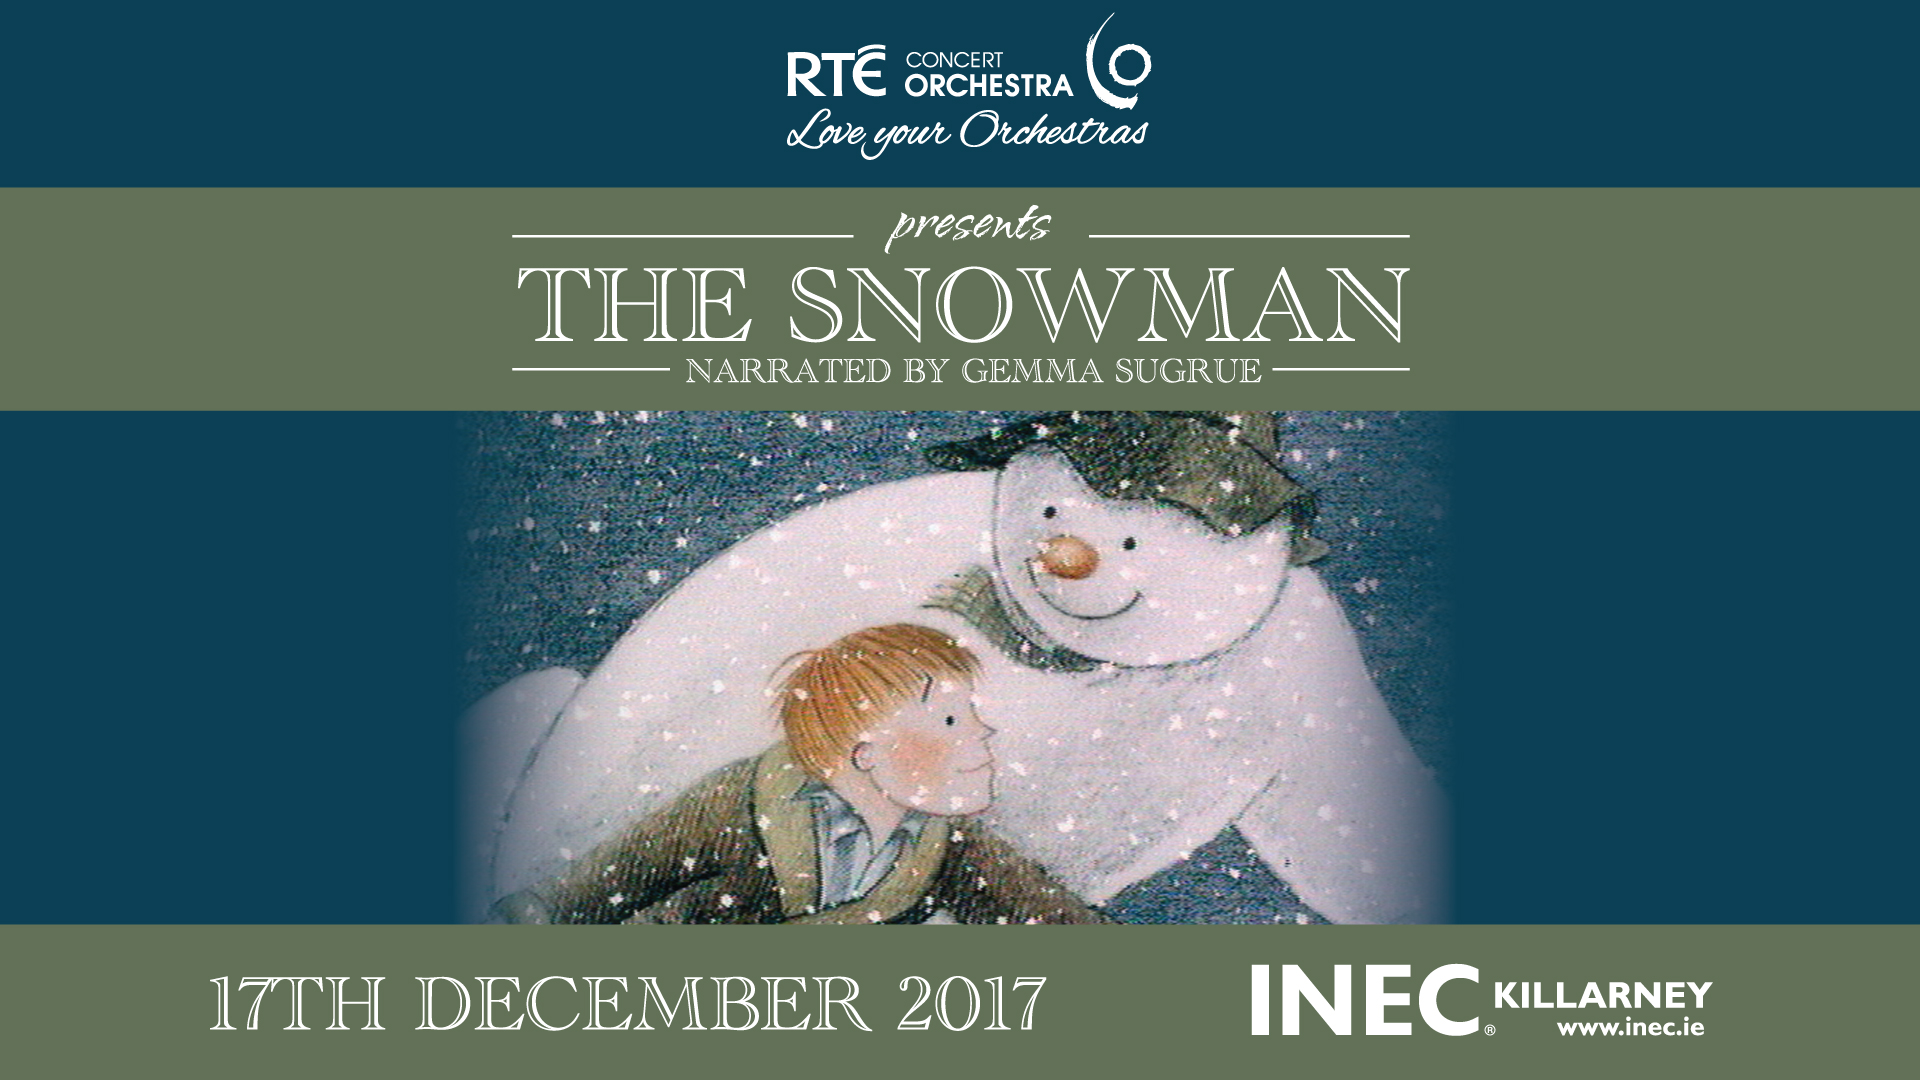 RTÉ Concert Orchestra presents The Snowman narrated by Gemma Sugrue this December 17th in the INEC Killarney